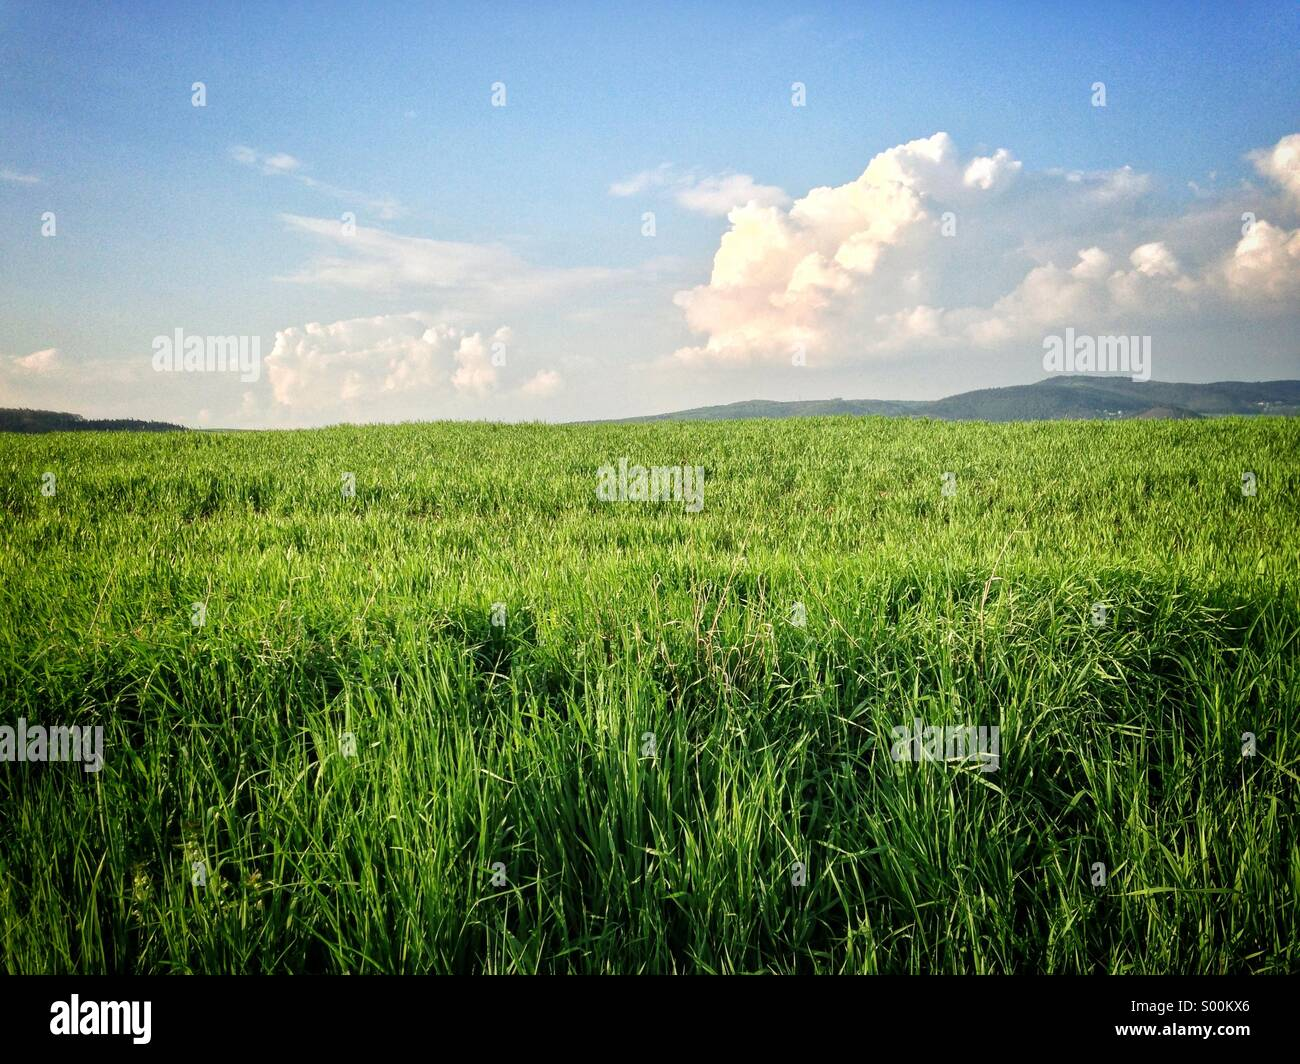 Grass field - Stock Image